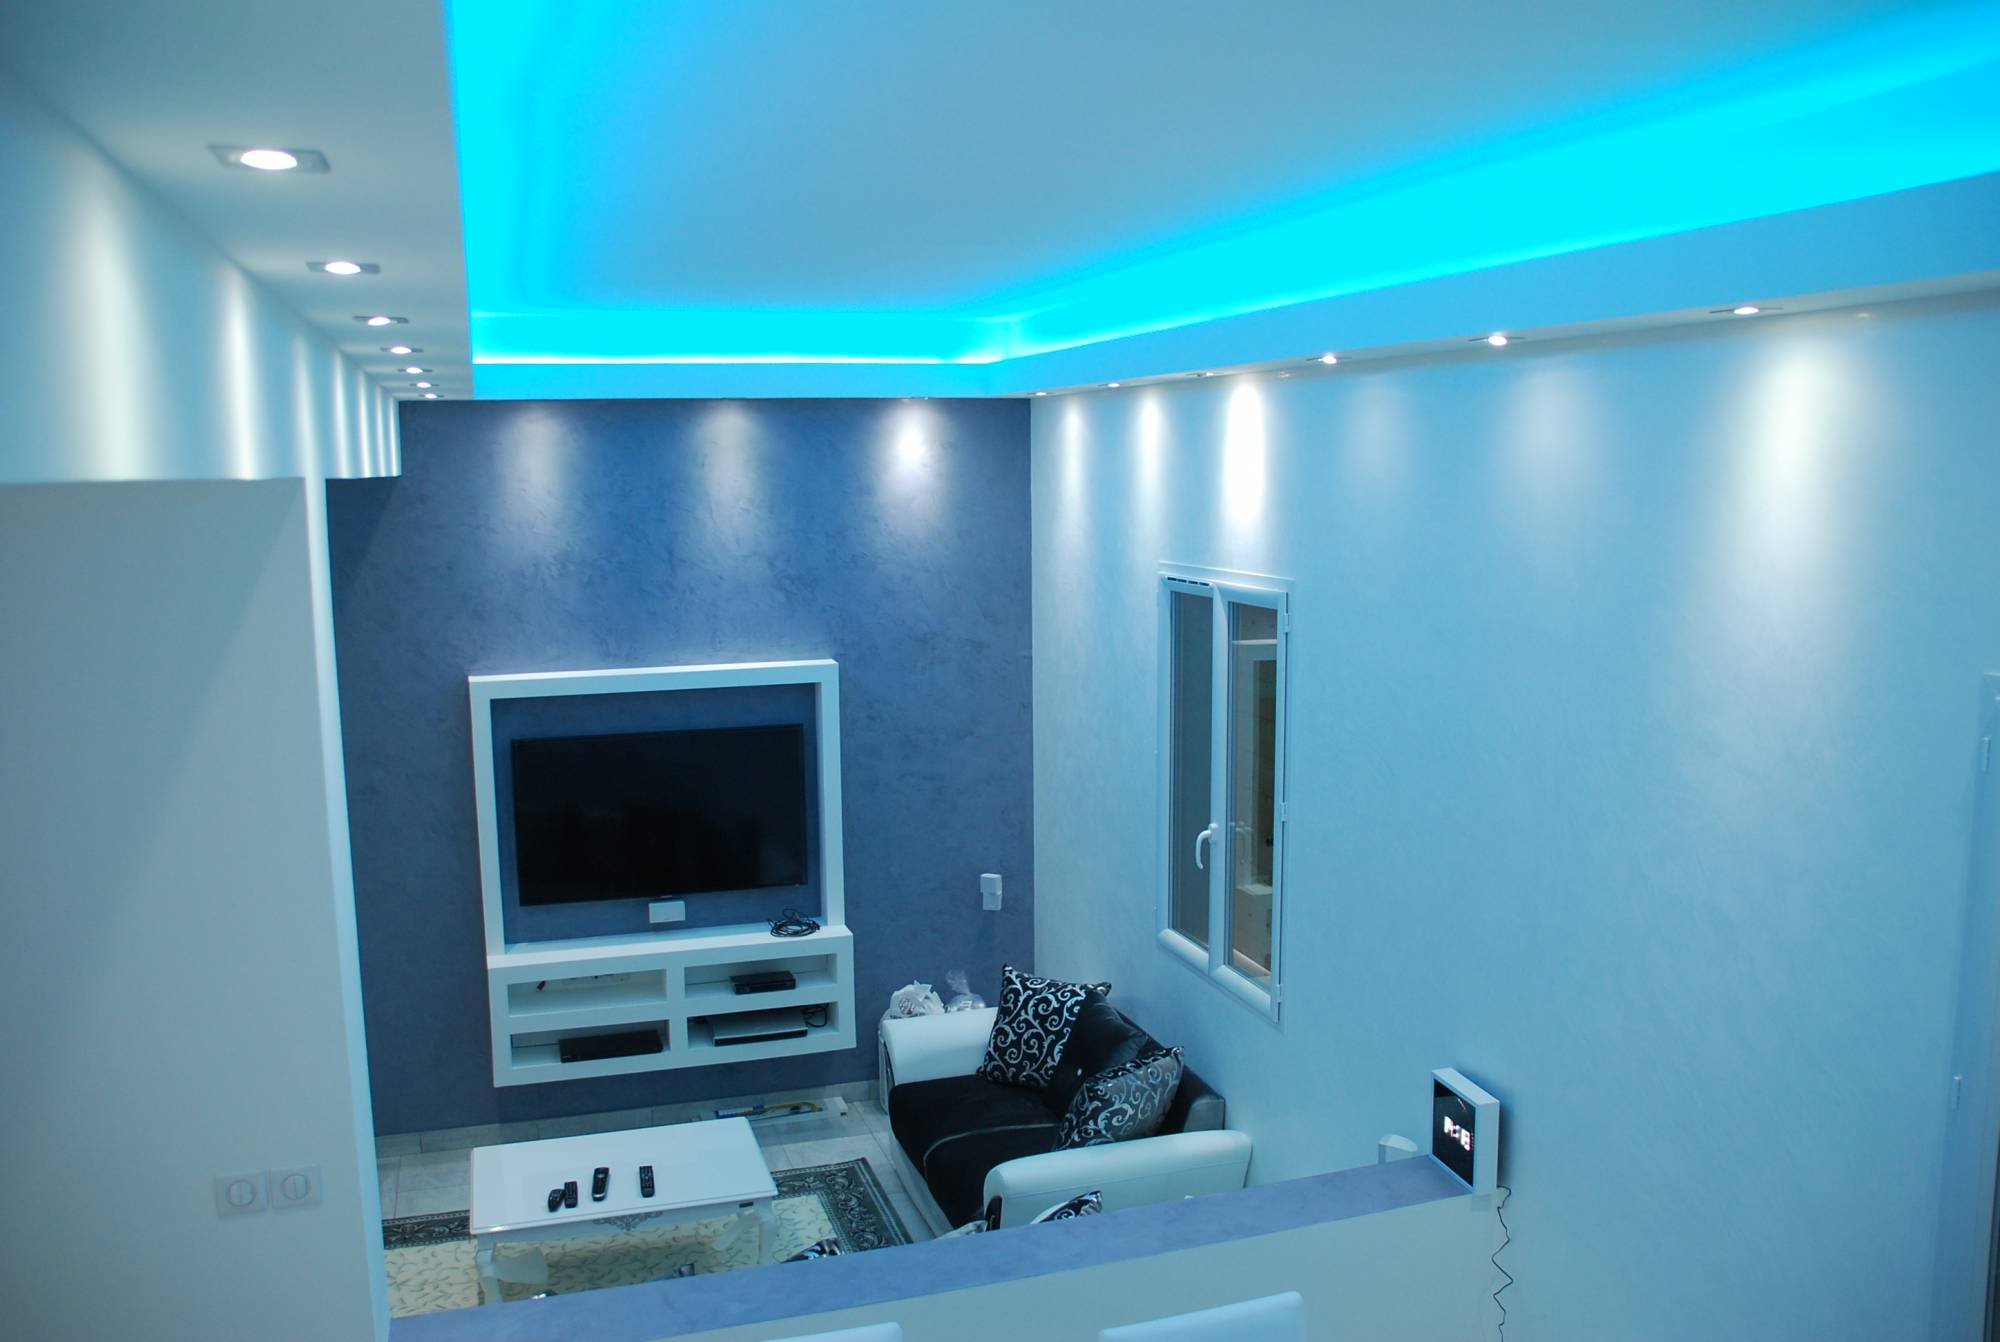 projet ruban led dans faux plafond forum sur les led. Black Bedroom Furniture Sets. Home Design Ideas